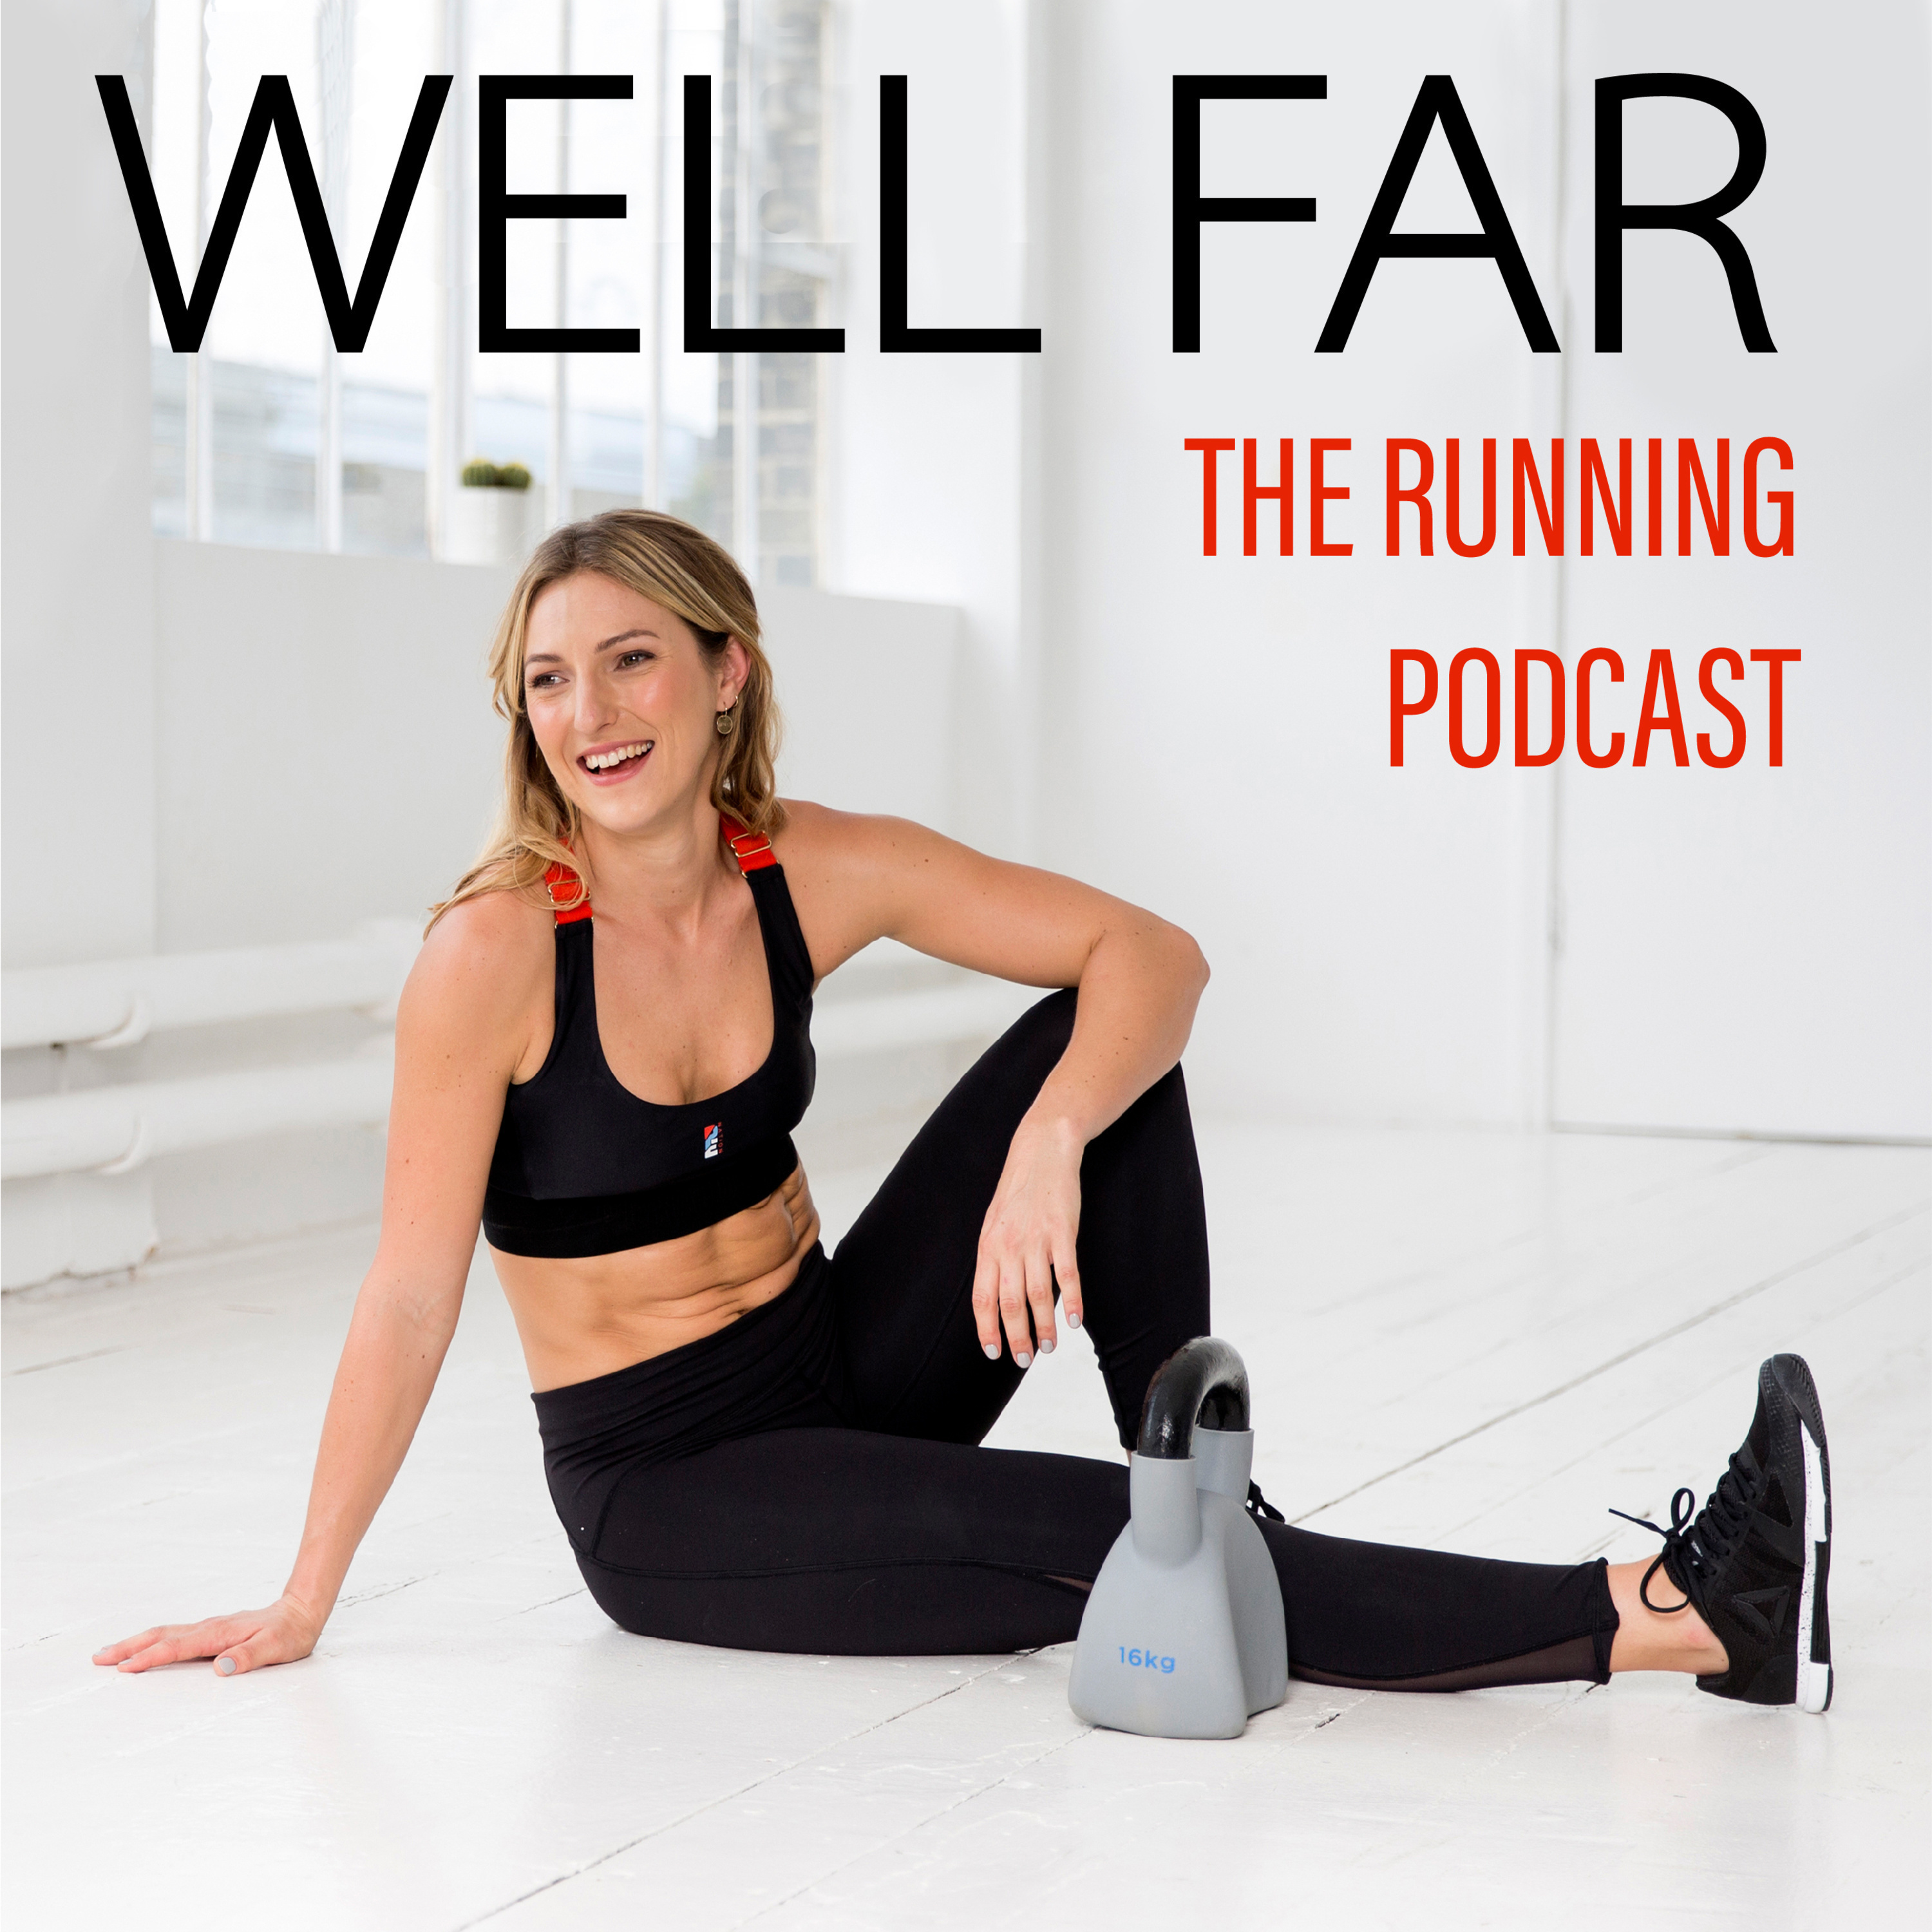 Natural ways to boost your running performance with Euan MacLennan and Georgie Bruinvels